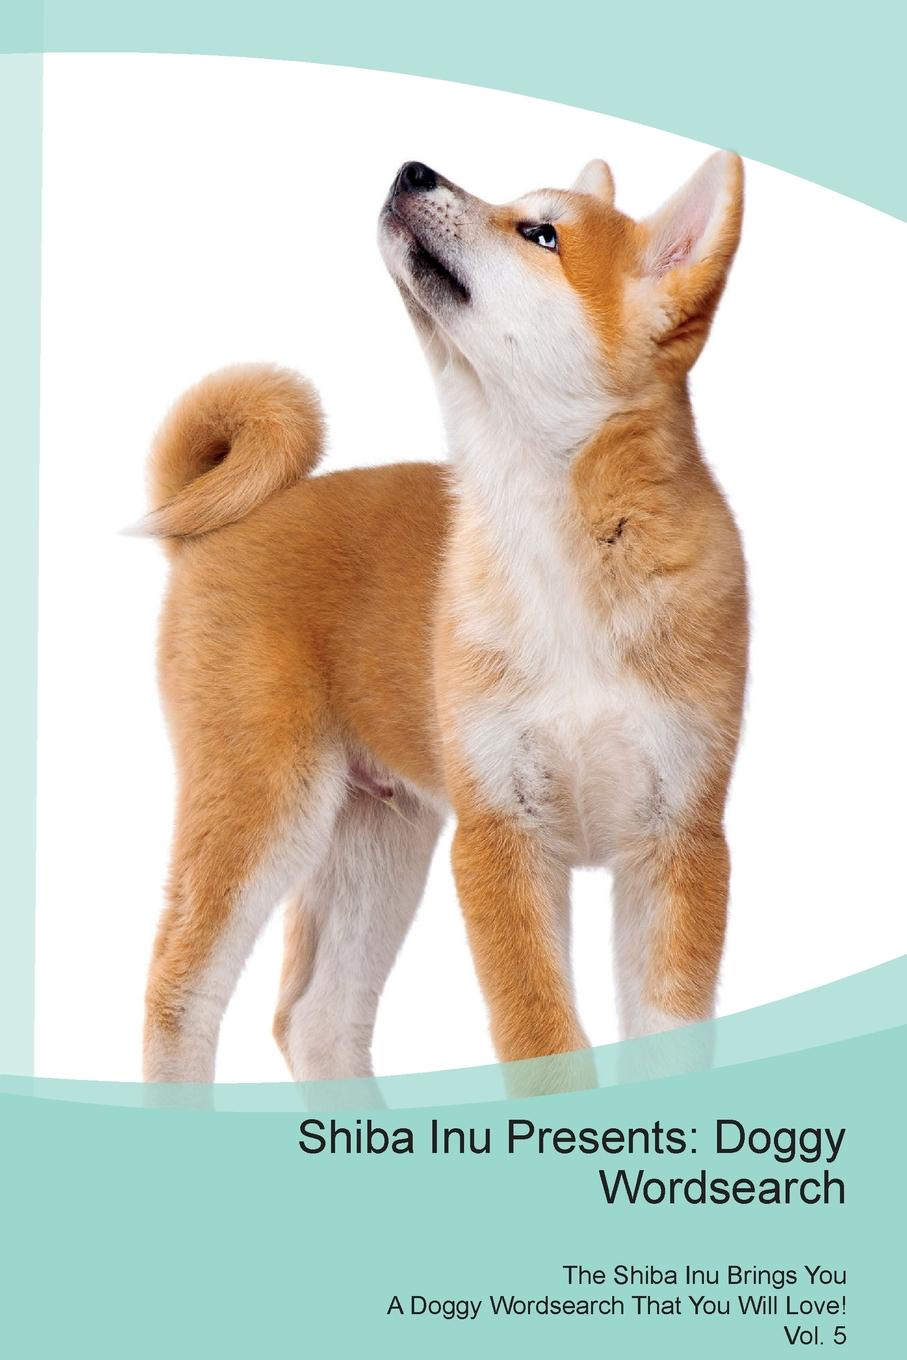 Doggy Puzzles Shiba Inu Presents. Wordsearch The Brings You A That Will Love! Vol. 5